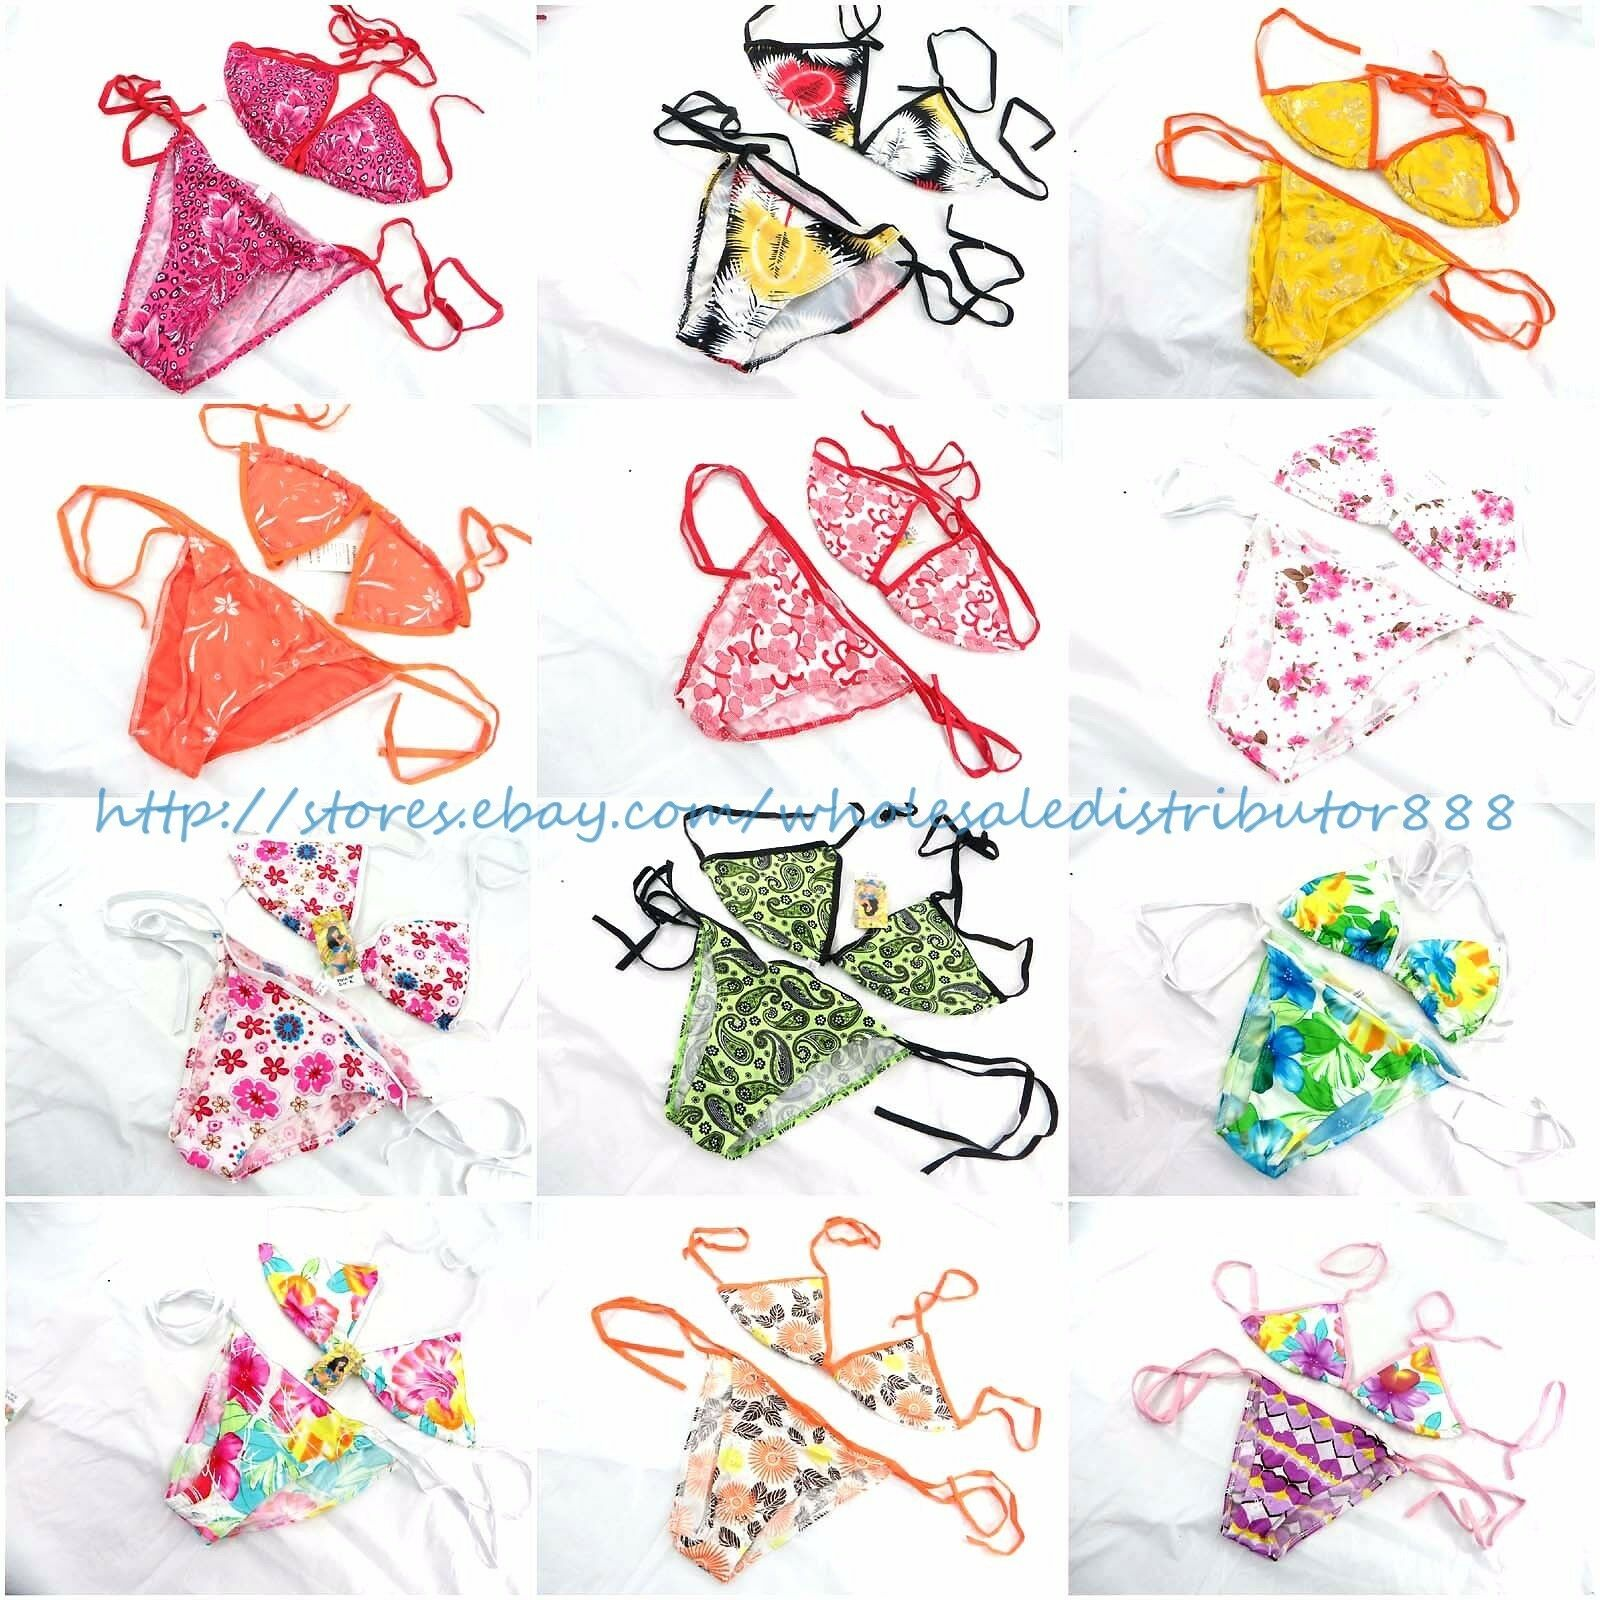 US SELLER- wholesale 10 sets Bikini Sexy Sexy Sexy Lady Swimwear Bathing Suit resort 40cec4